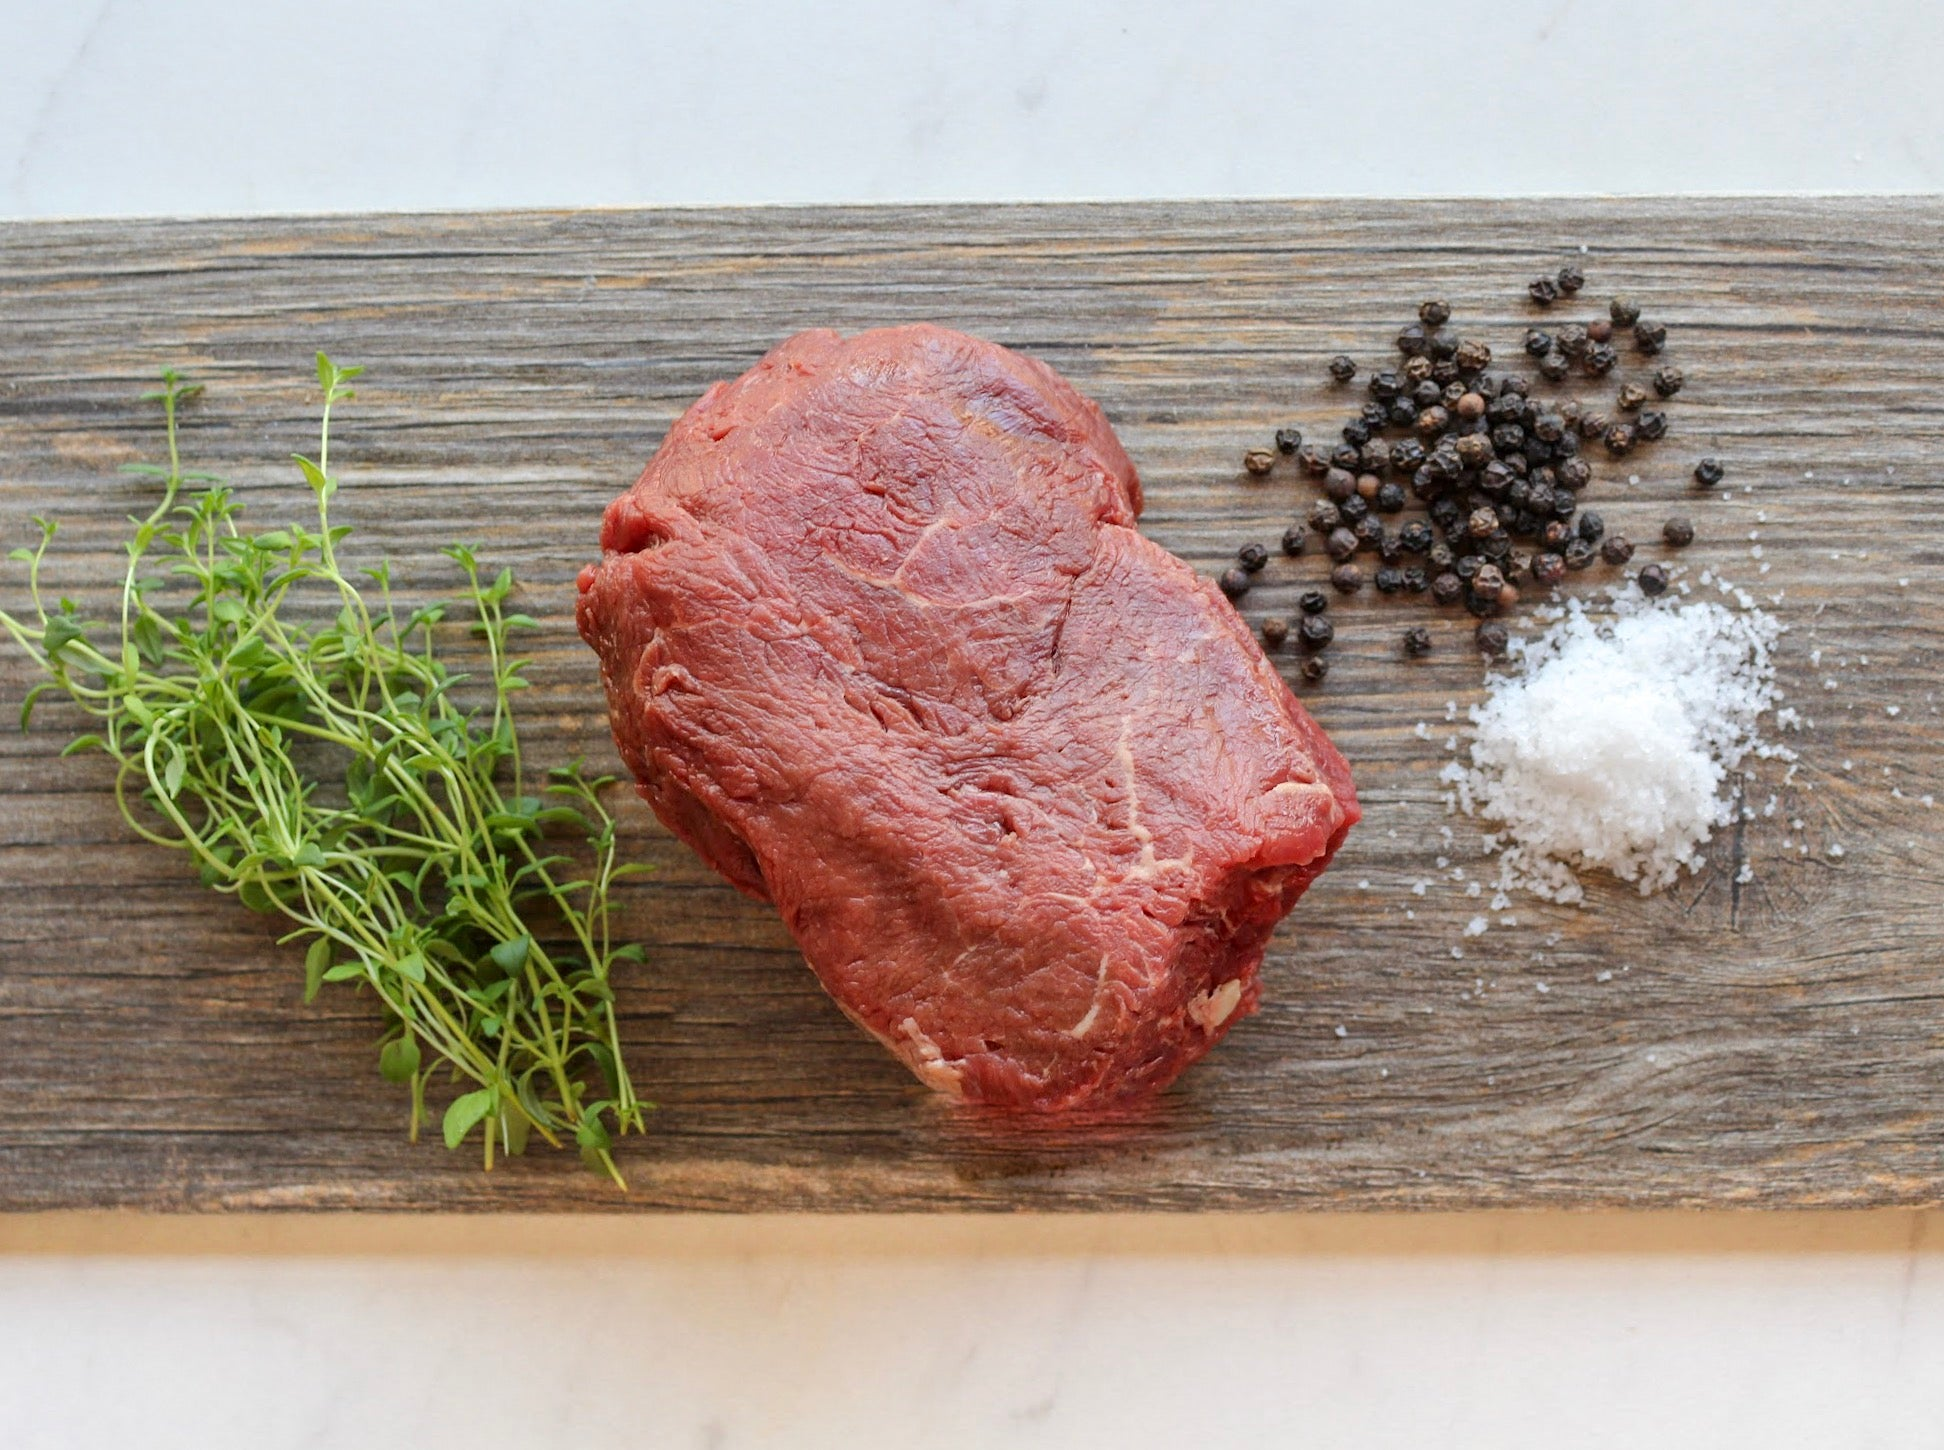 Alabama Grass Fed Organic Filet Mignon